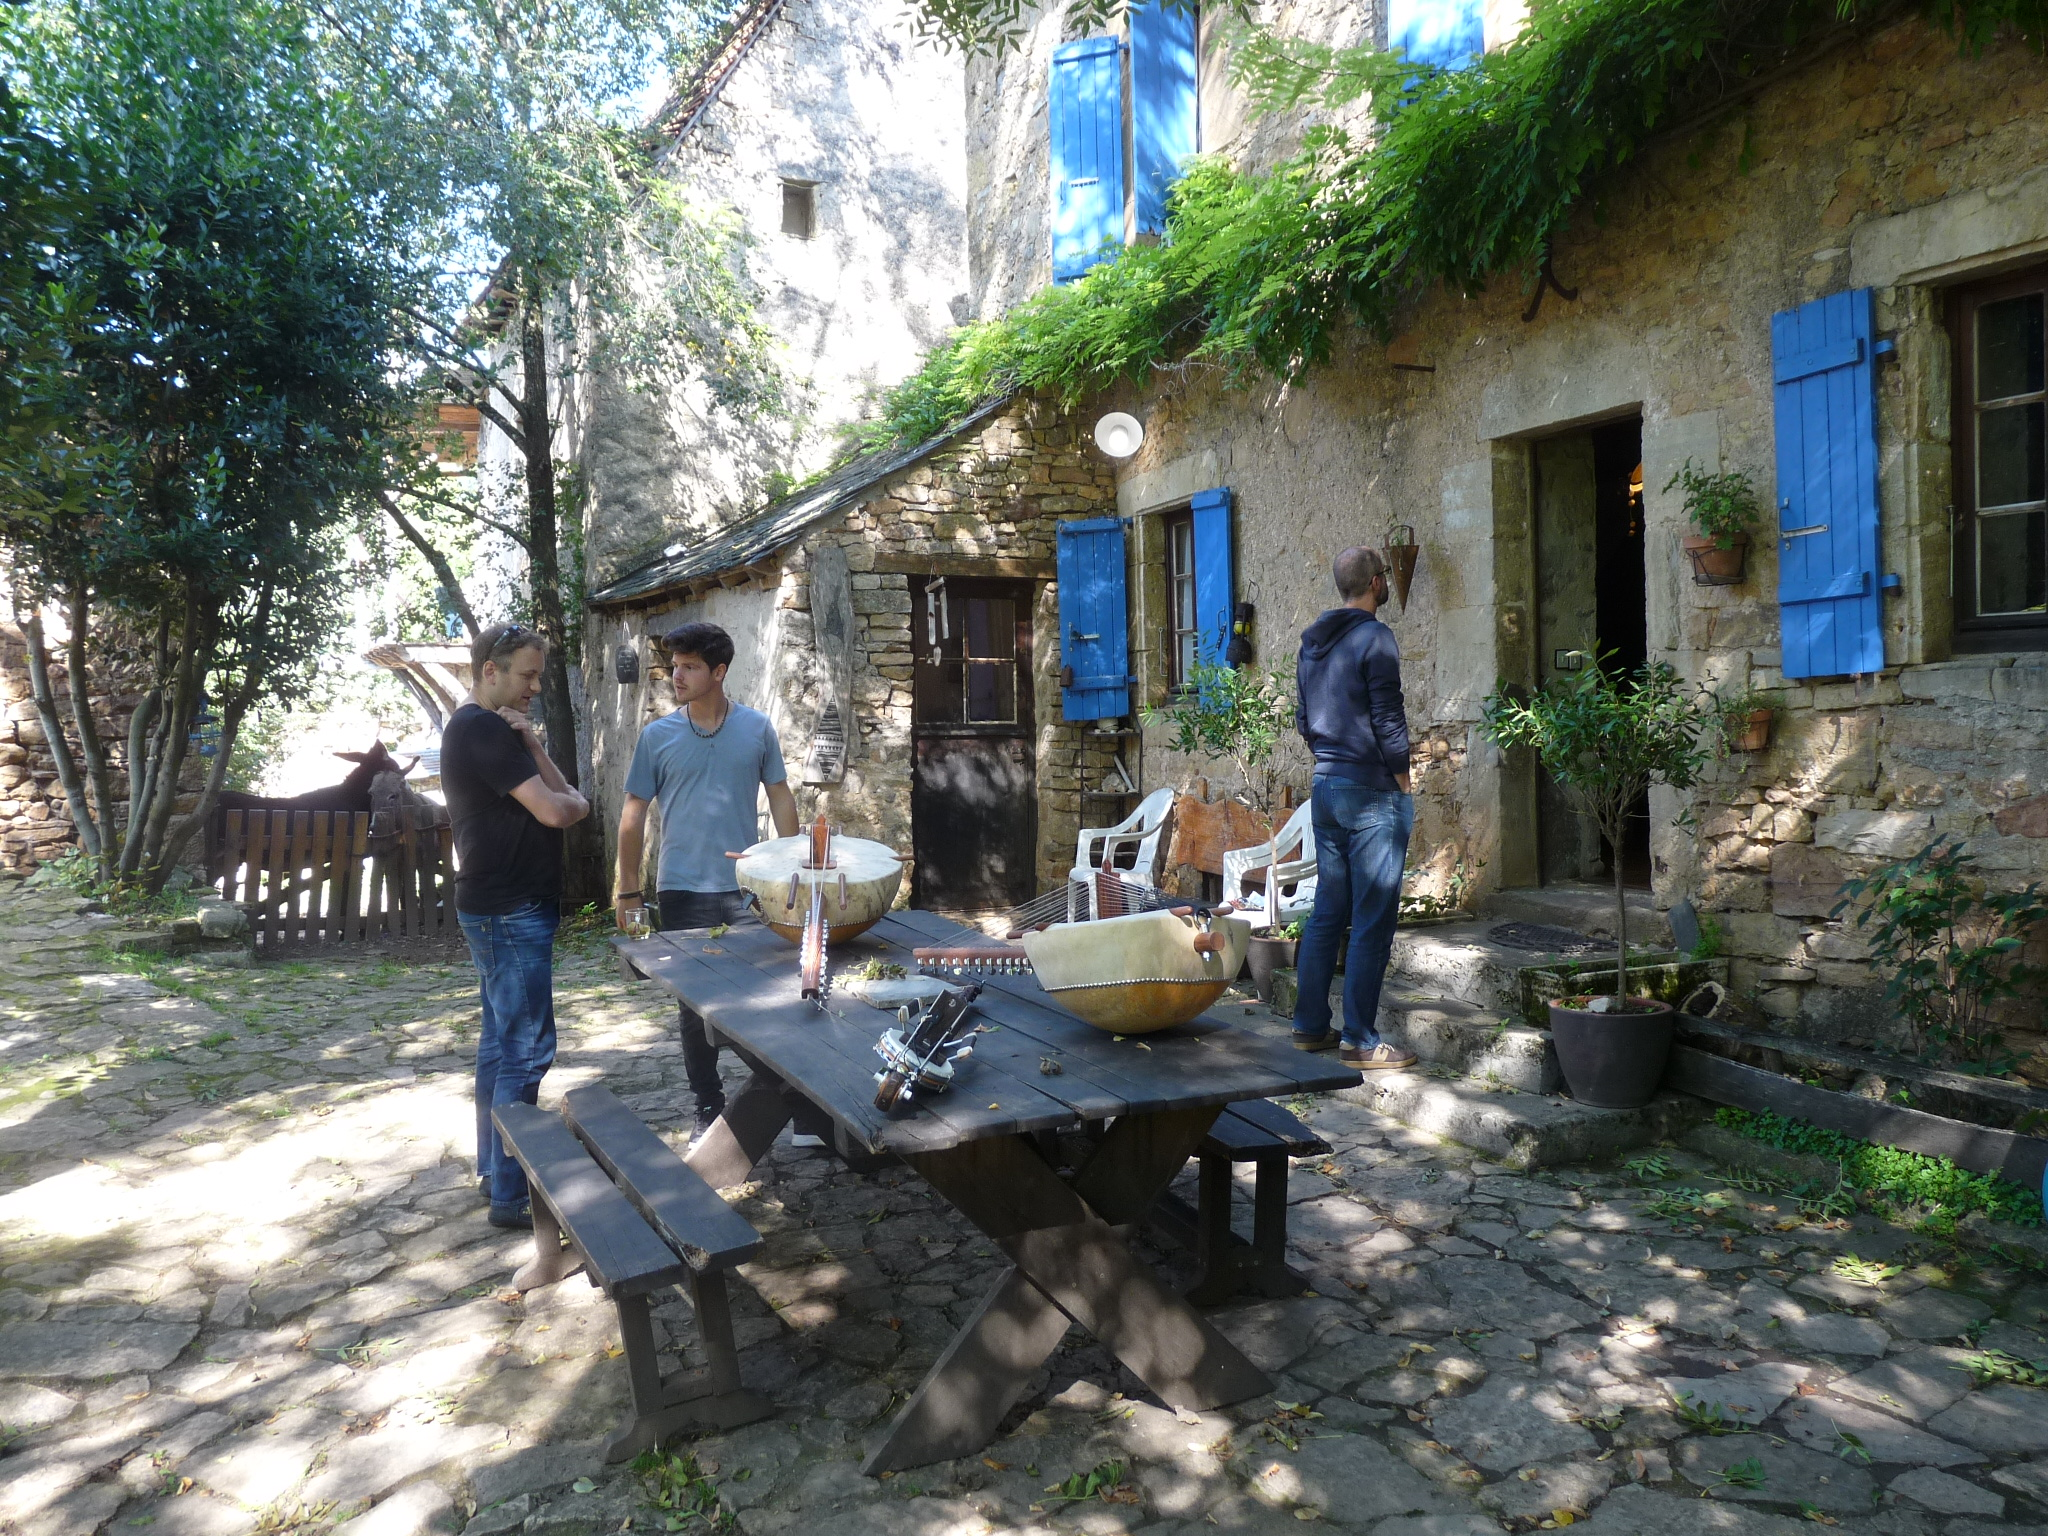 koras on a table outisde stone farmhouse, students waiting for the lunch call